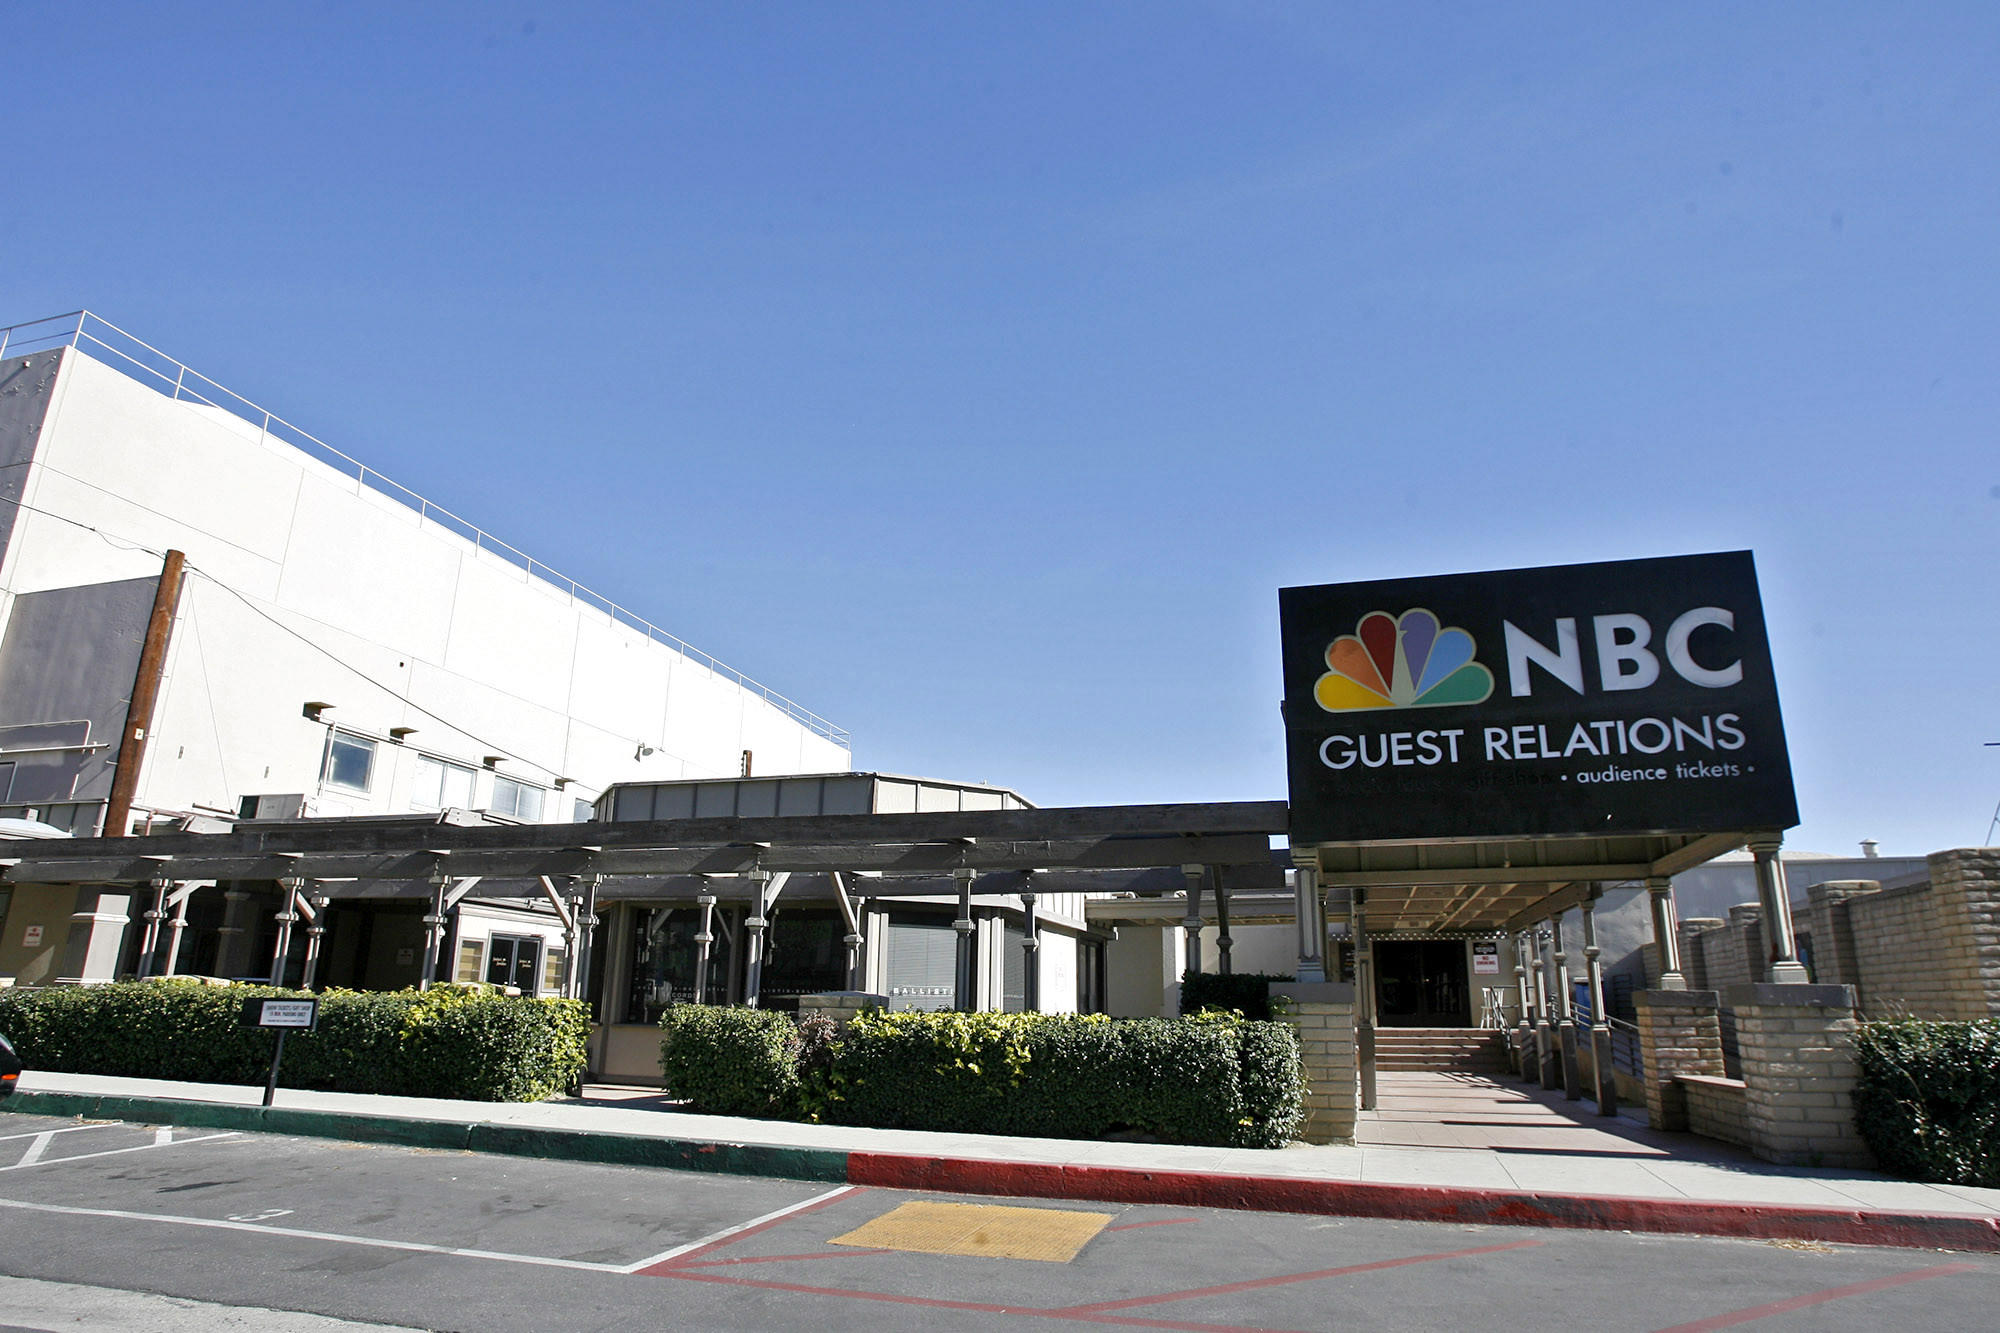 NBC Studios in Burbank Ca., on Sat. January 19, 2013.